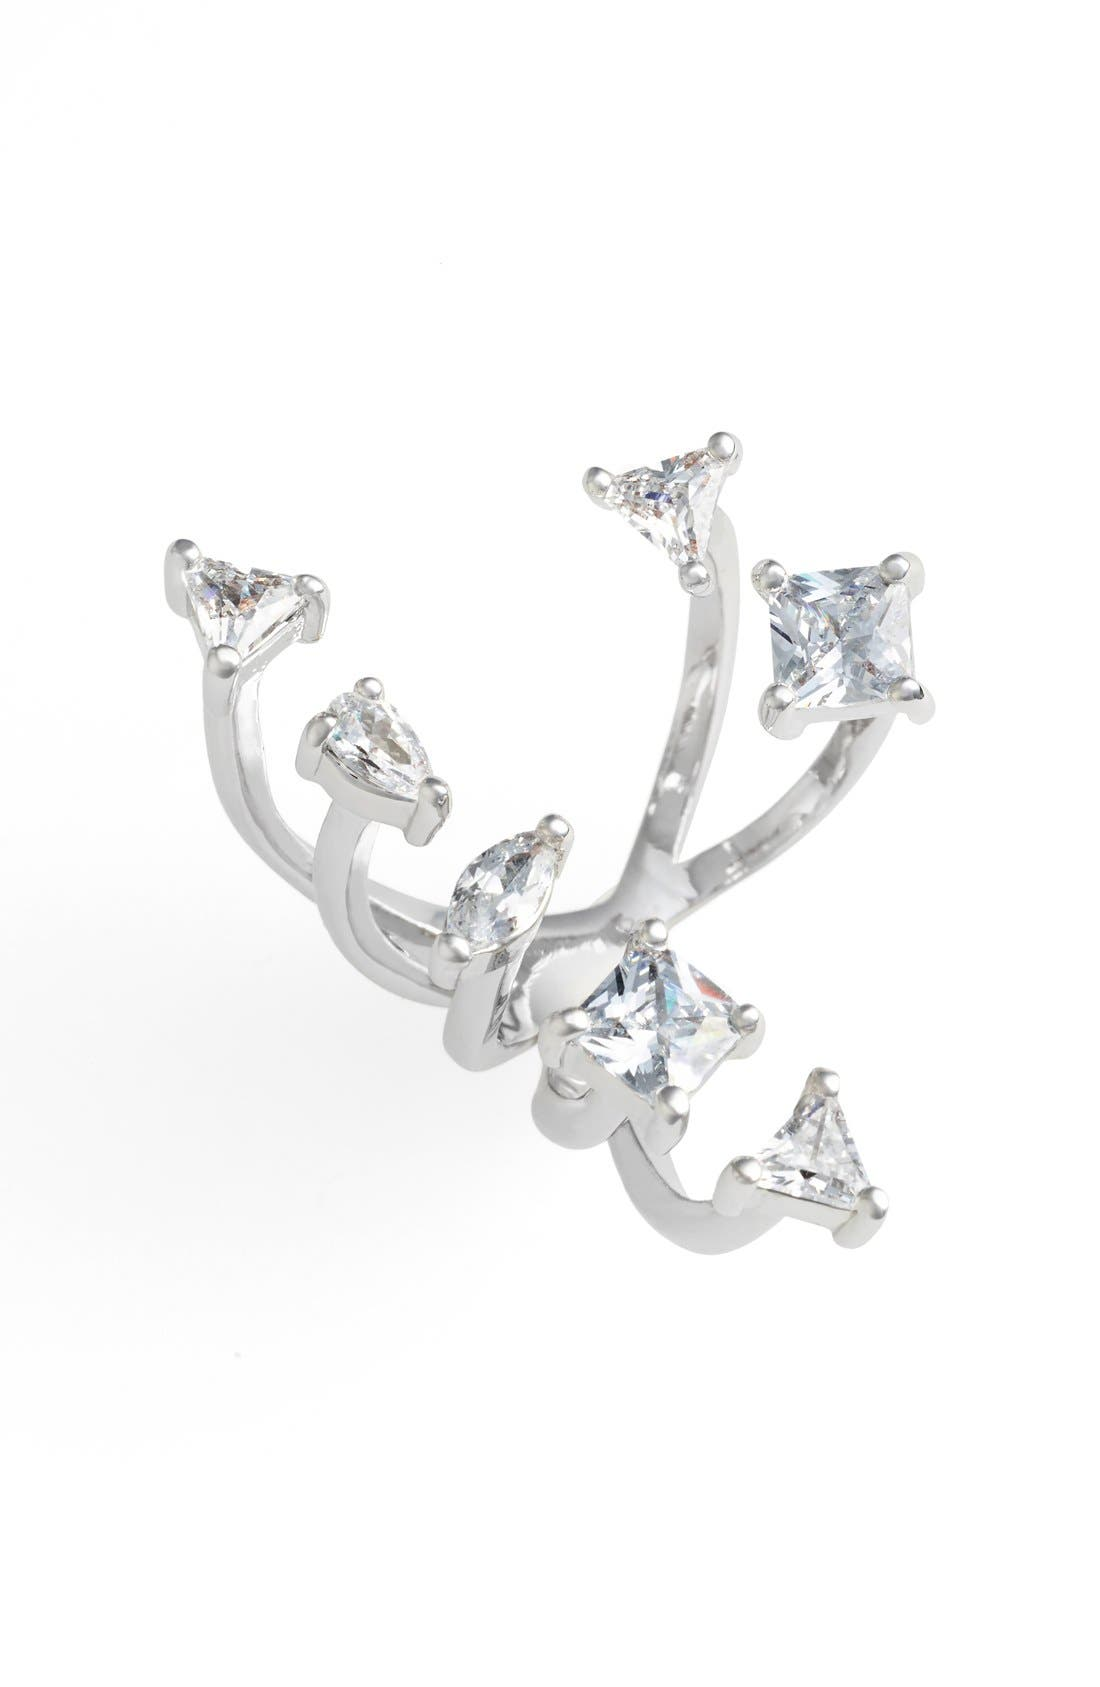 Main Image - CZ by Kenneth Jay Lane Asymmetrical Cubic Zirconia Open Ring